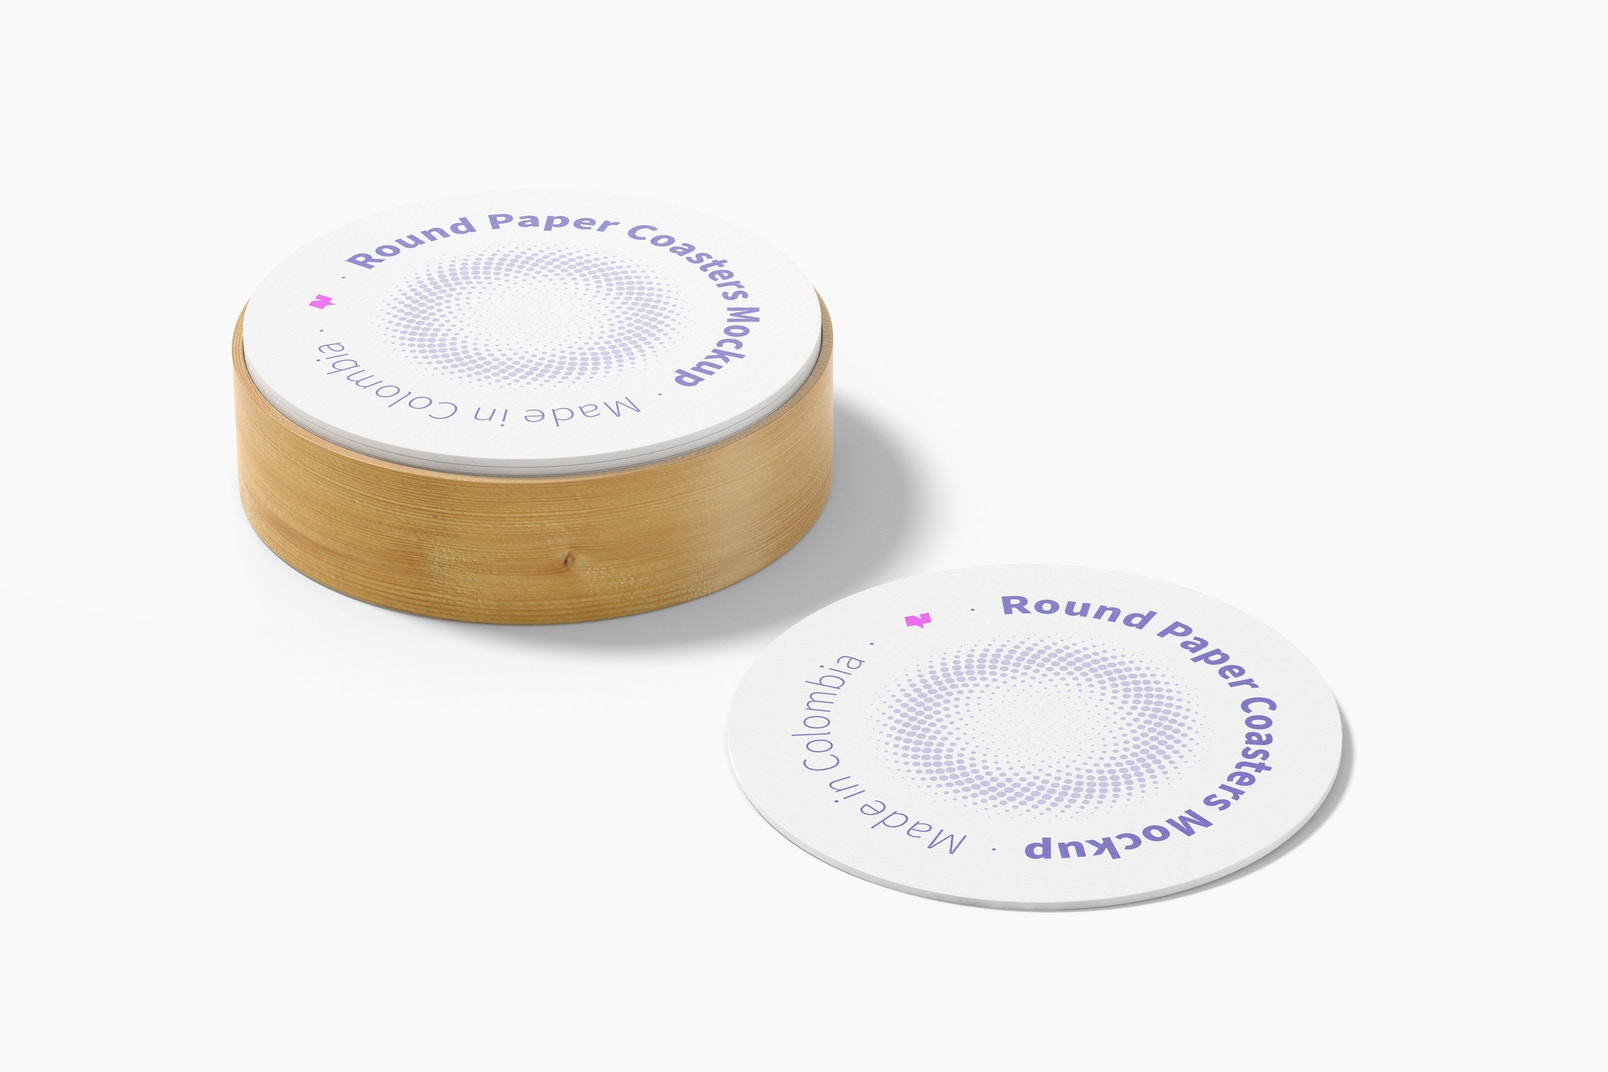 Round Paper Coasters with Box Mockup